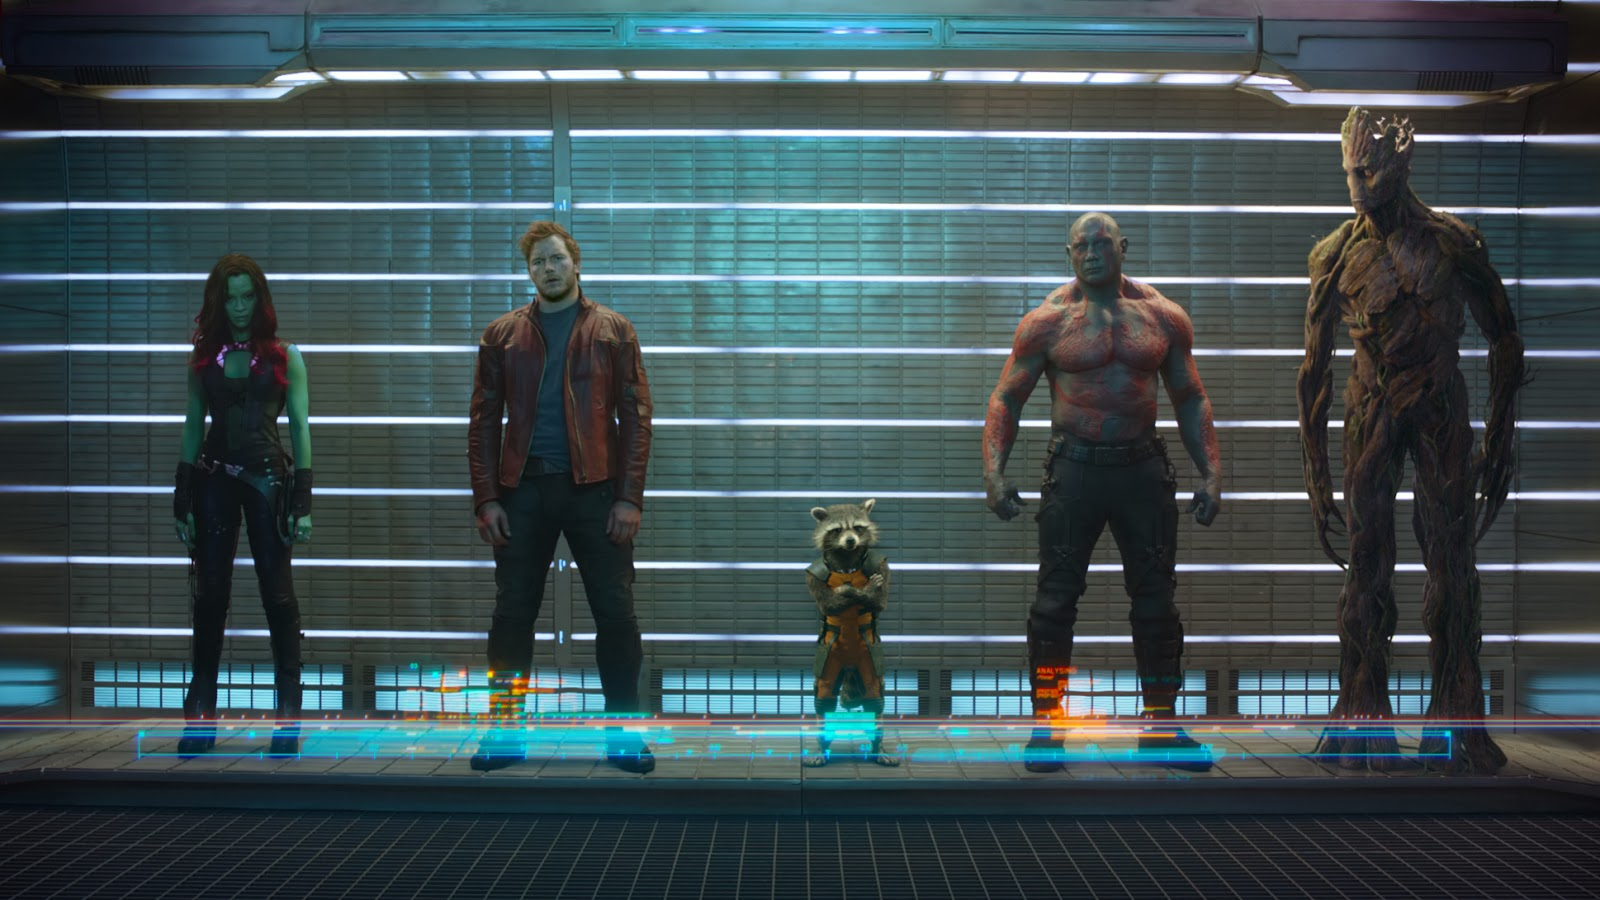 The Guardians of the Galaxy:  Gamora, Star Lord, Rocket Racoon, Drax the Destroyer, and Groot